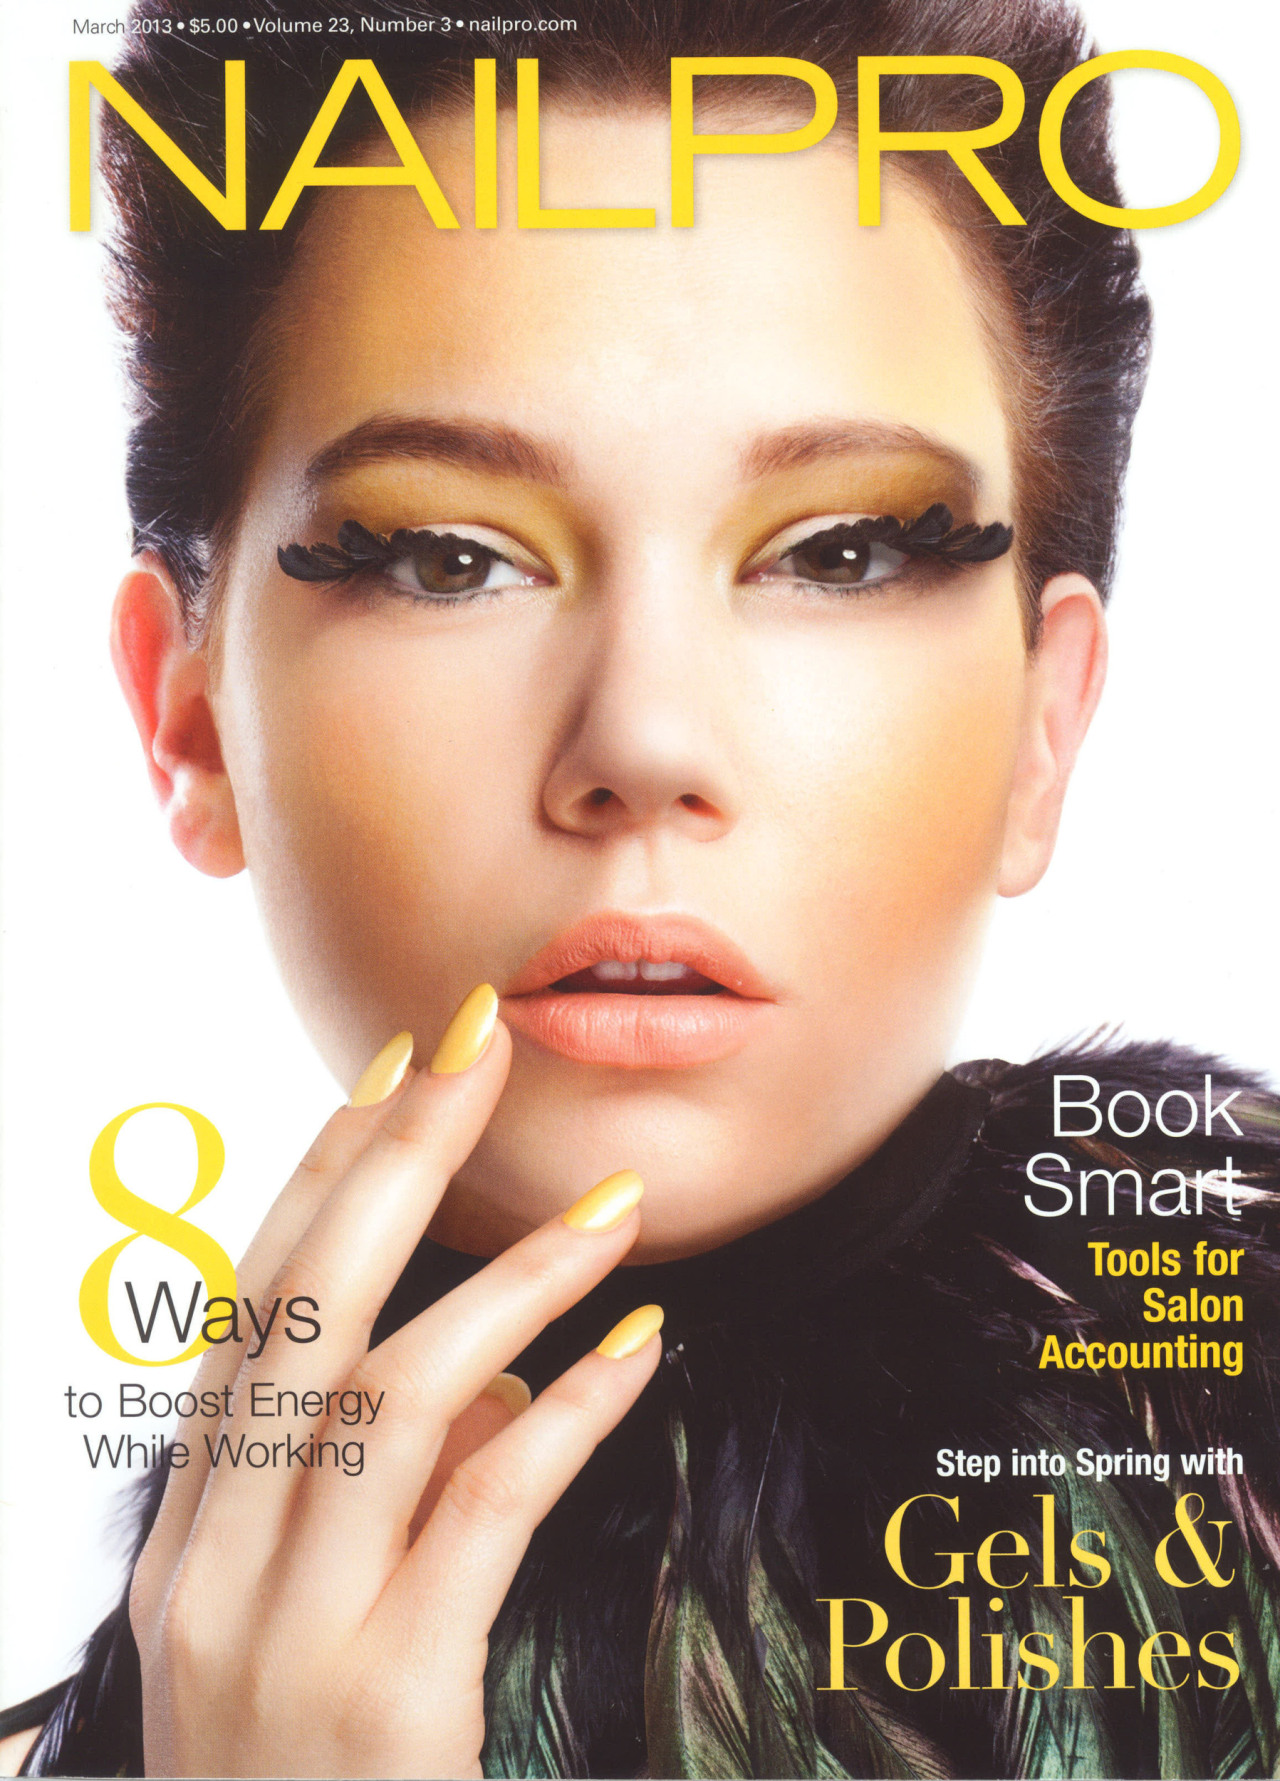 Nailpro cover #2 with Alli! haircolor by Jared Gee haircut by Jennifer Audeon